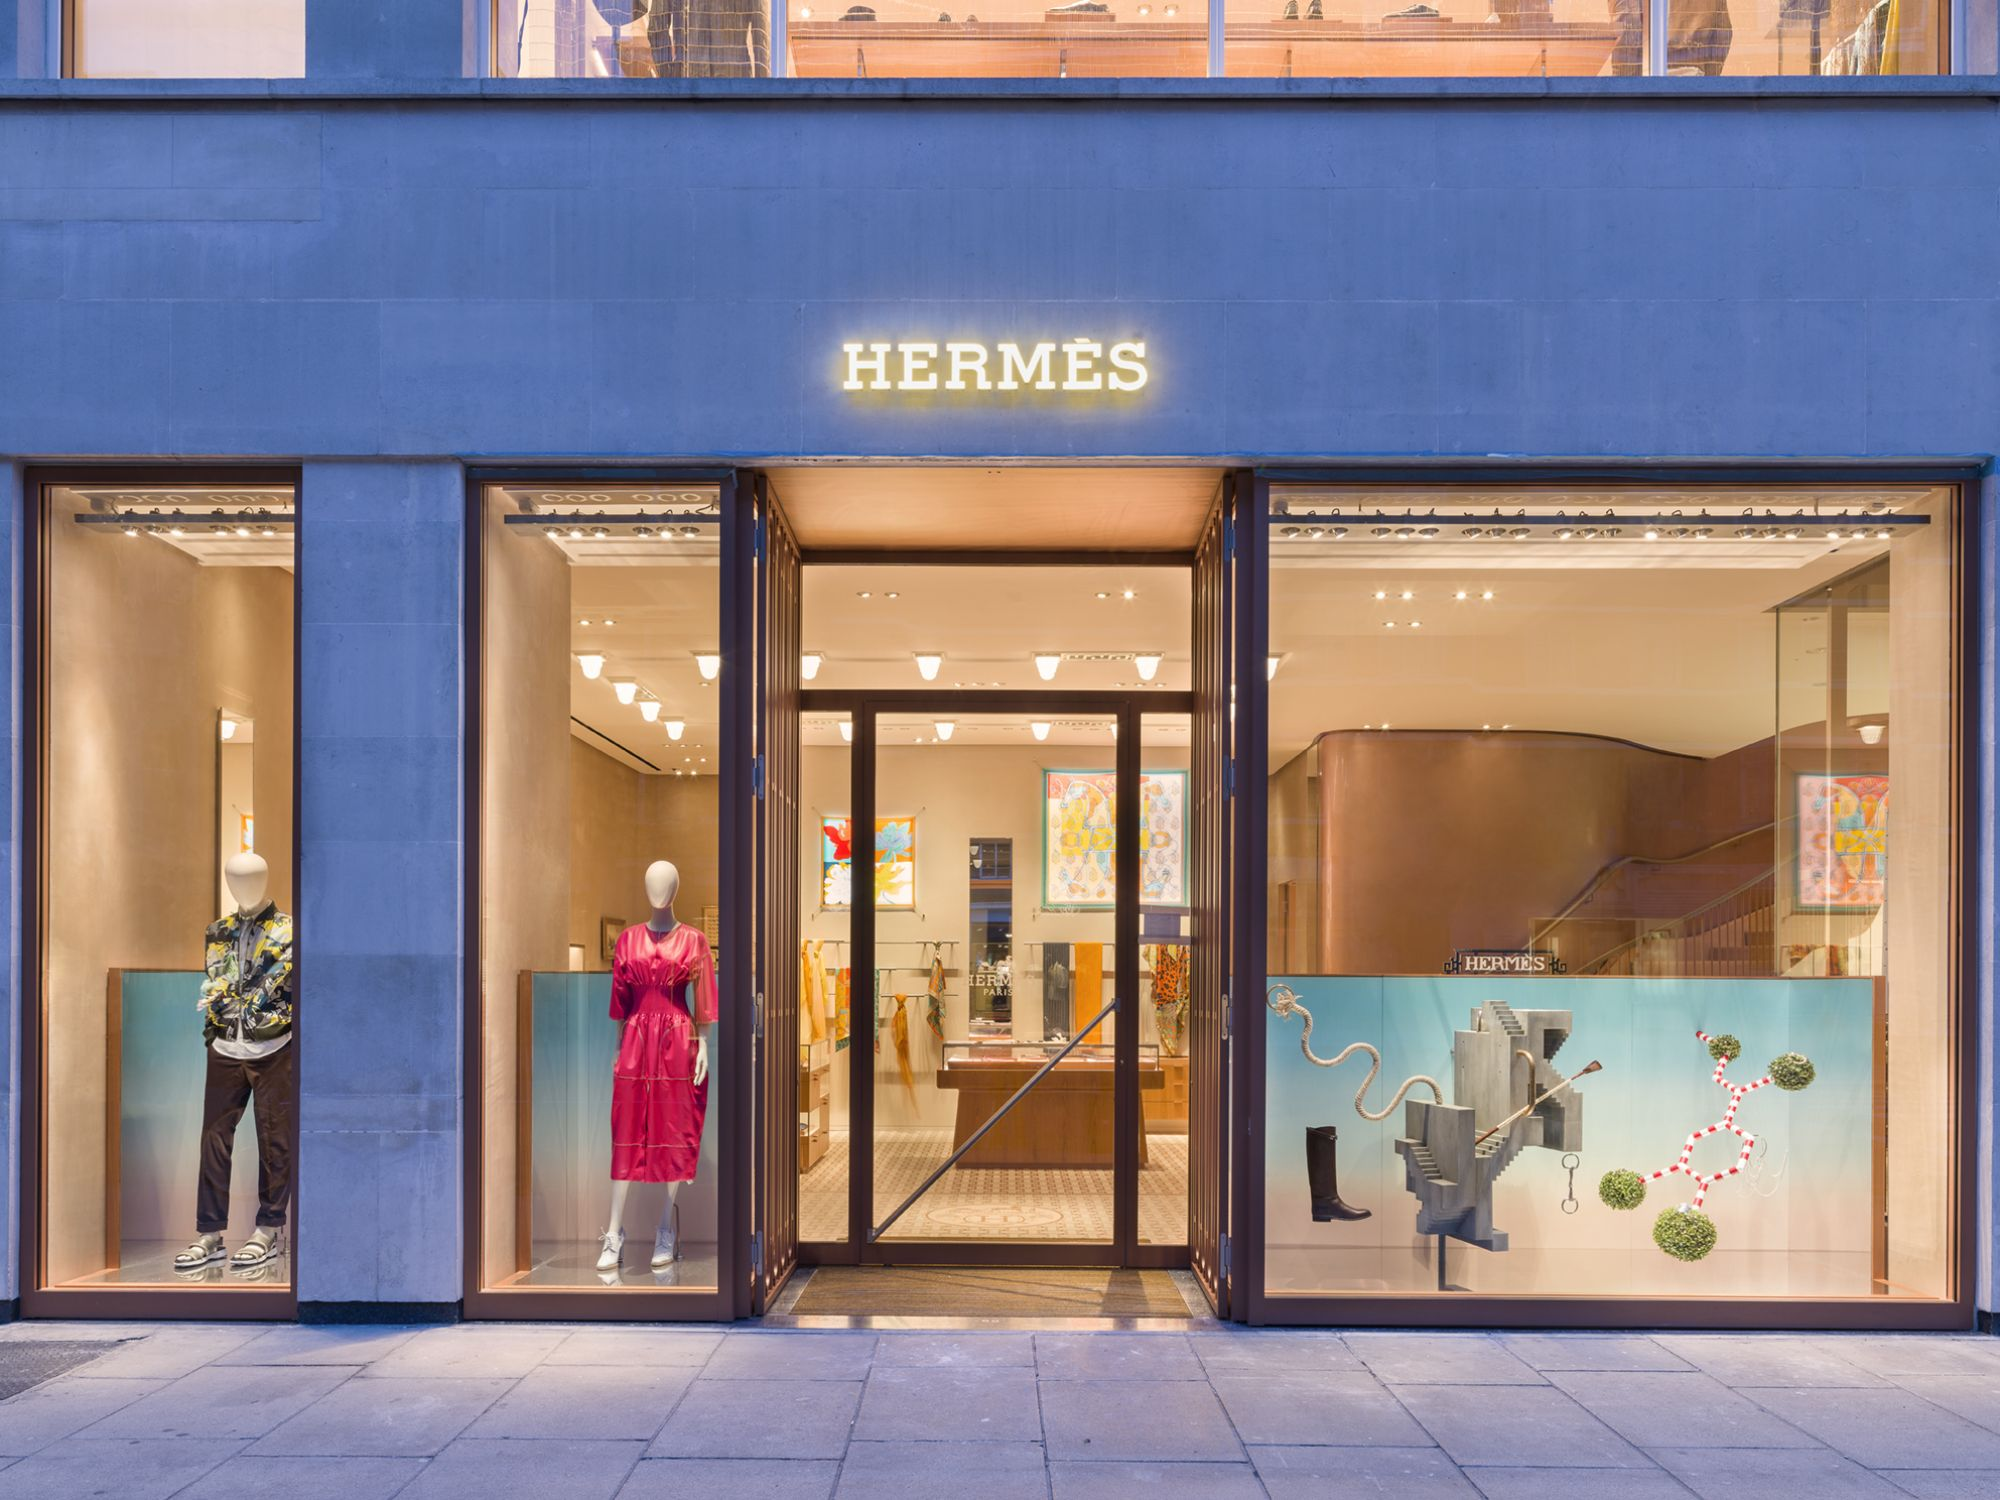 Hermes new store London at Sloane Street